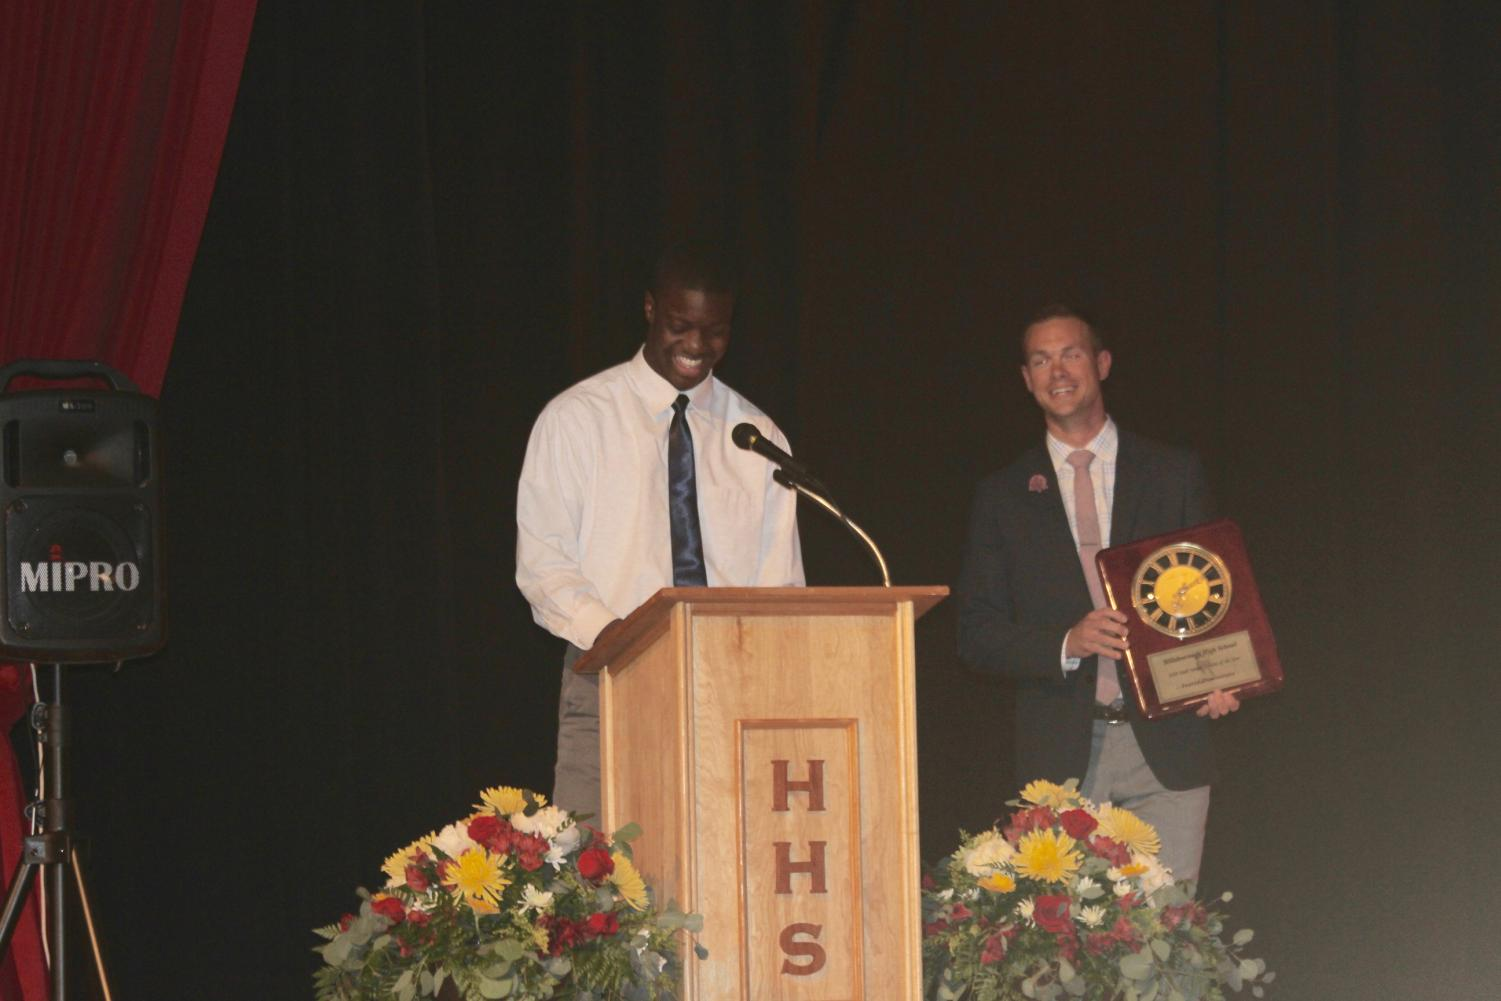 Dominique giving his speech for the Male Athlete of the Year award while Davis stands beside him, presenting Dominique's plaque.